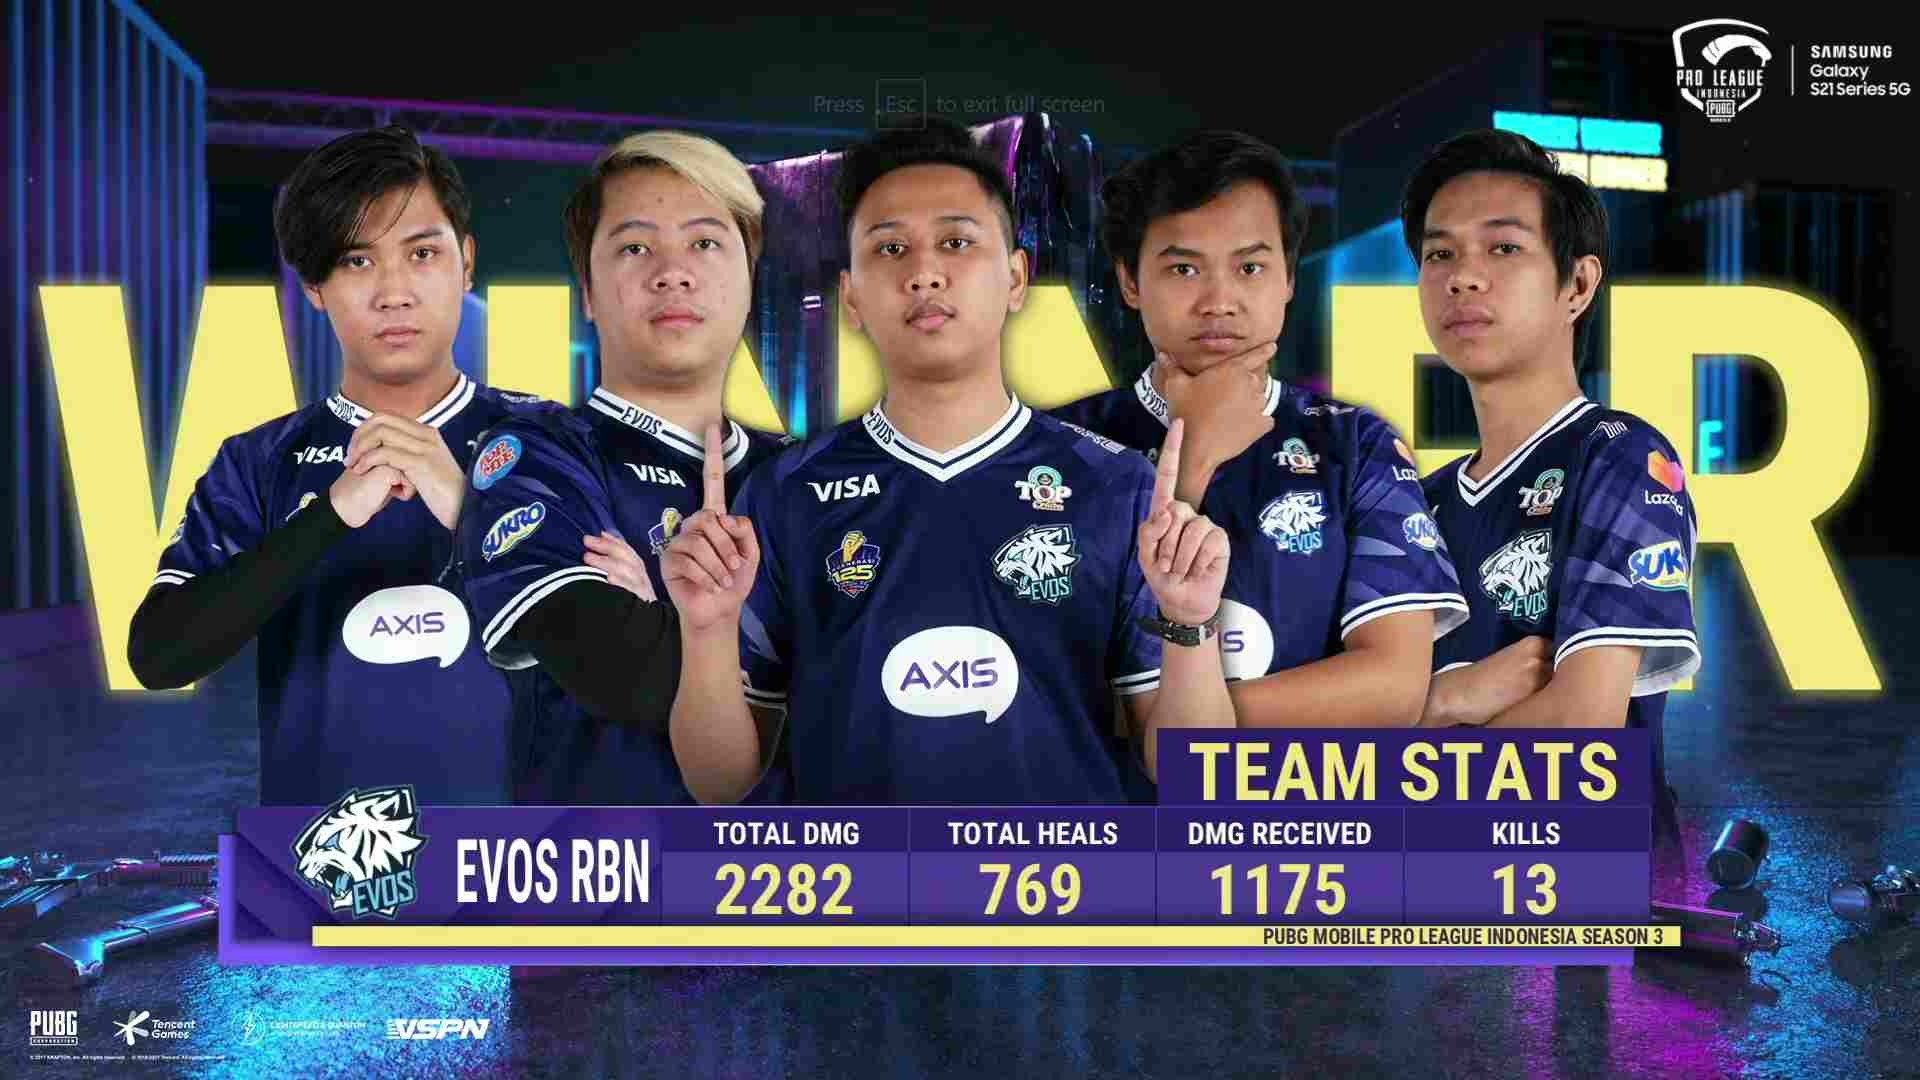 PMPL Indonesia Season 3 Day 1 overall standings